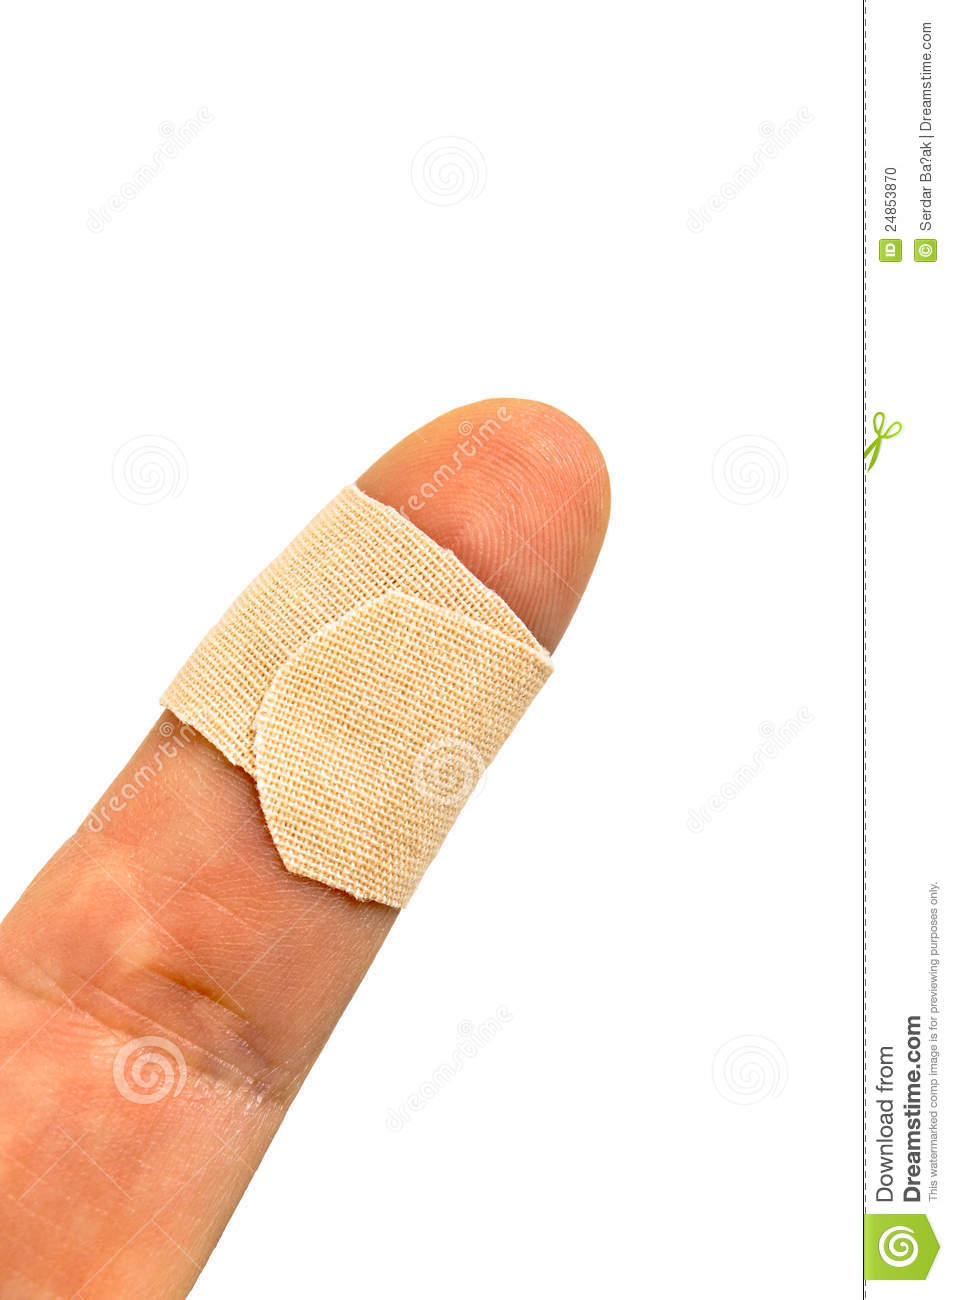 Little Finger With Band-aid Stock Photo - Image: 24853870